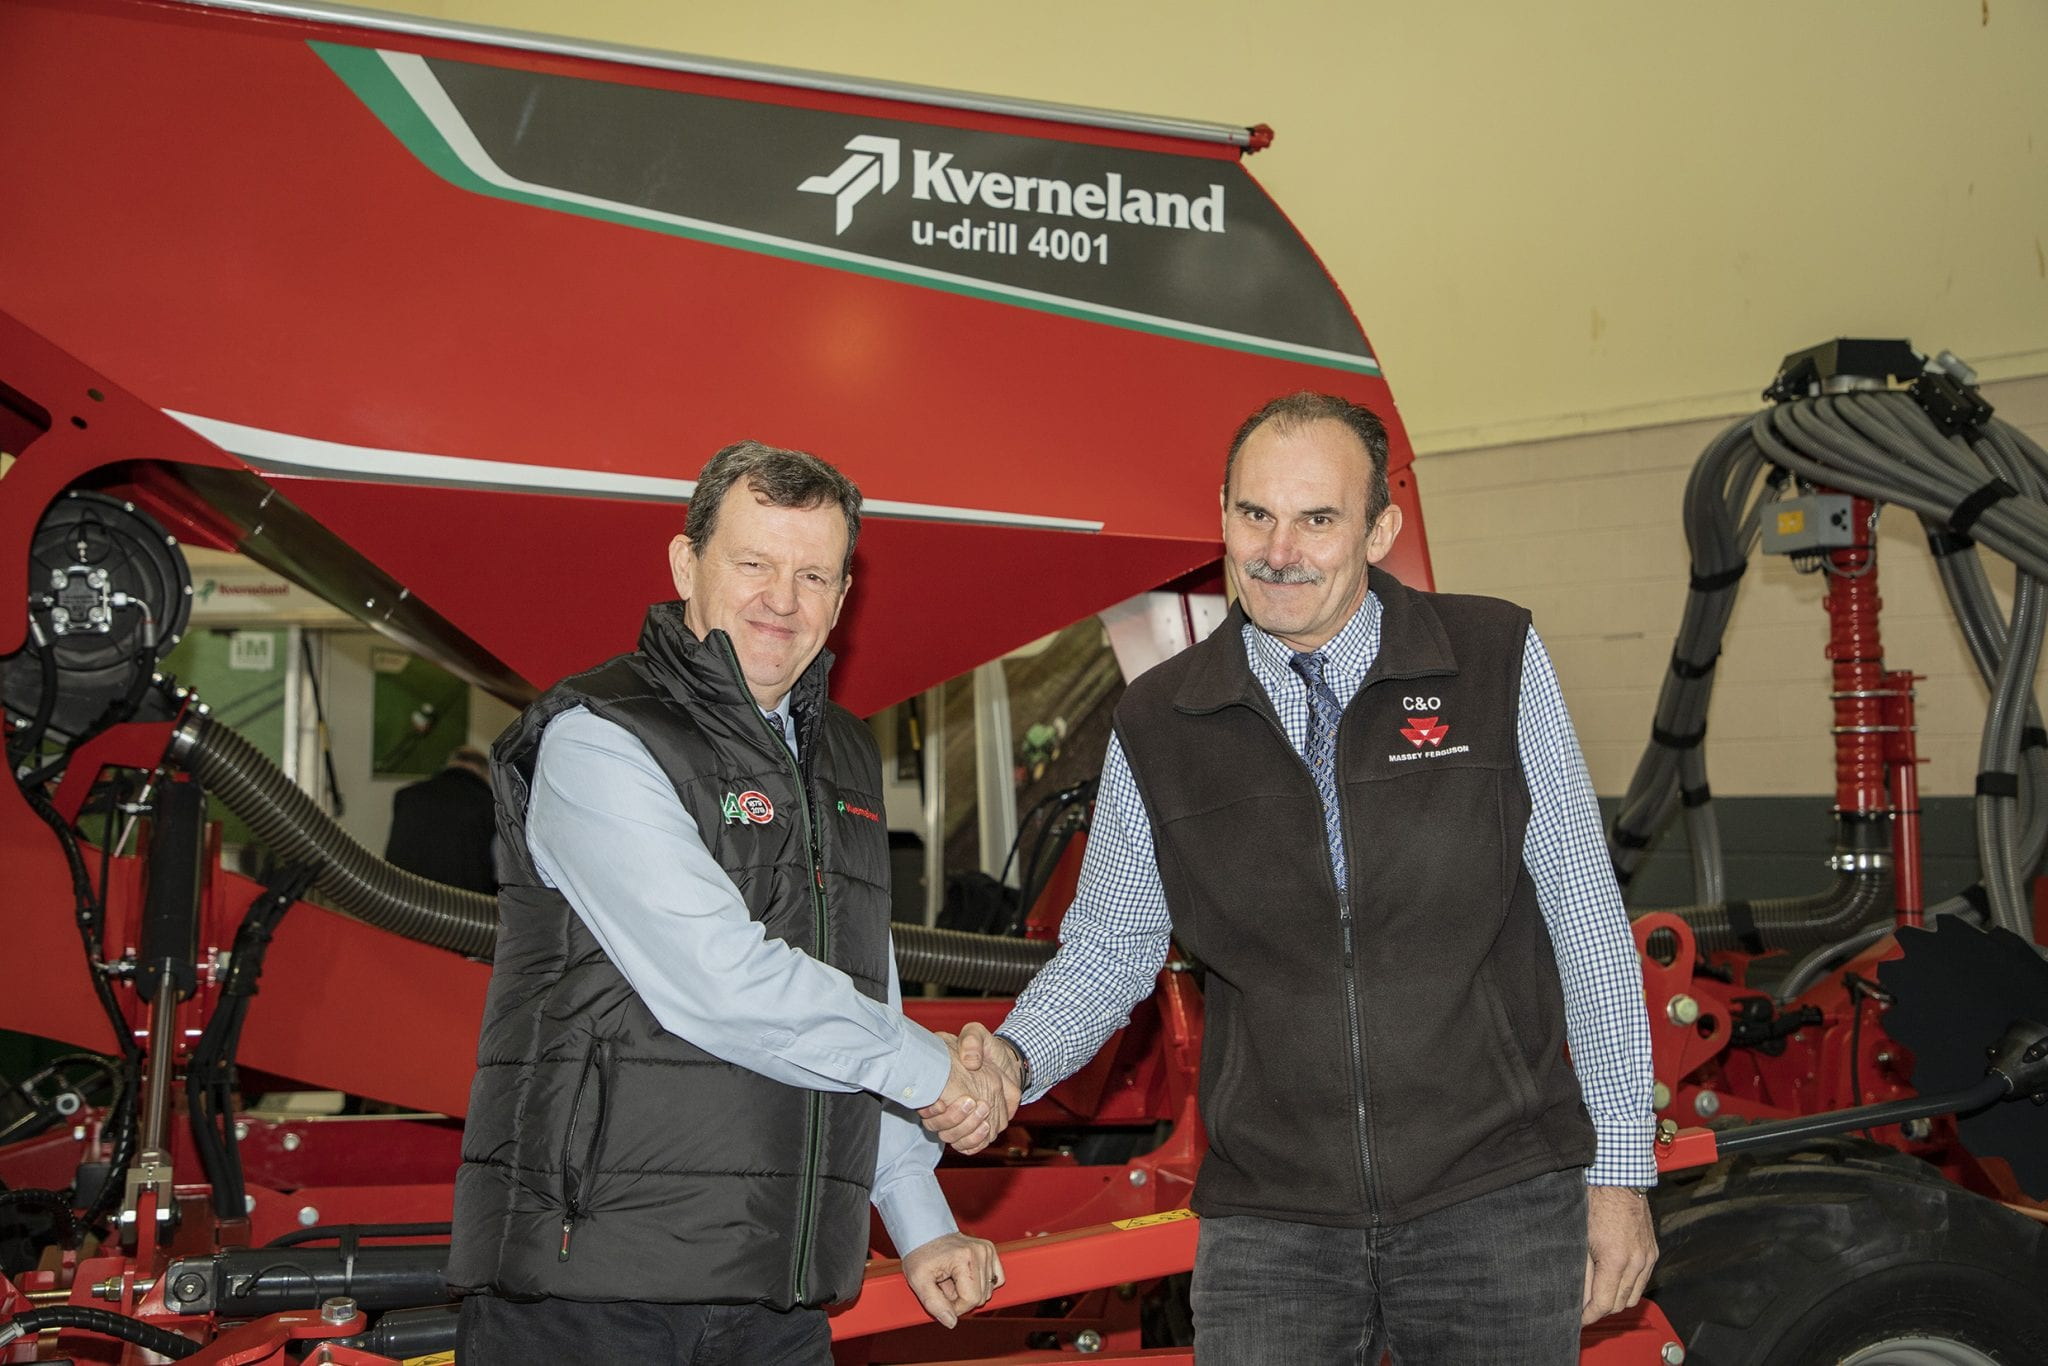 C&O offer Kverneland to more customers